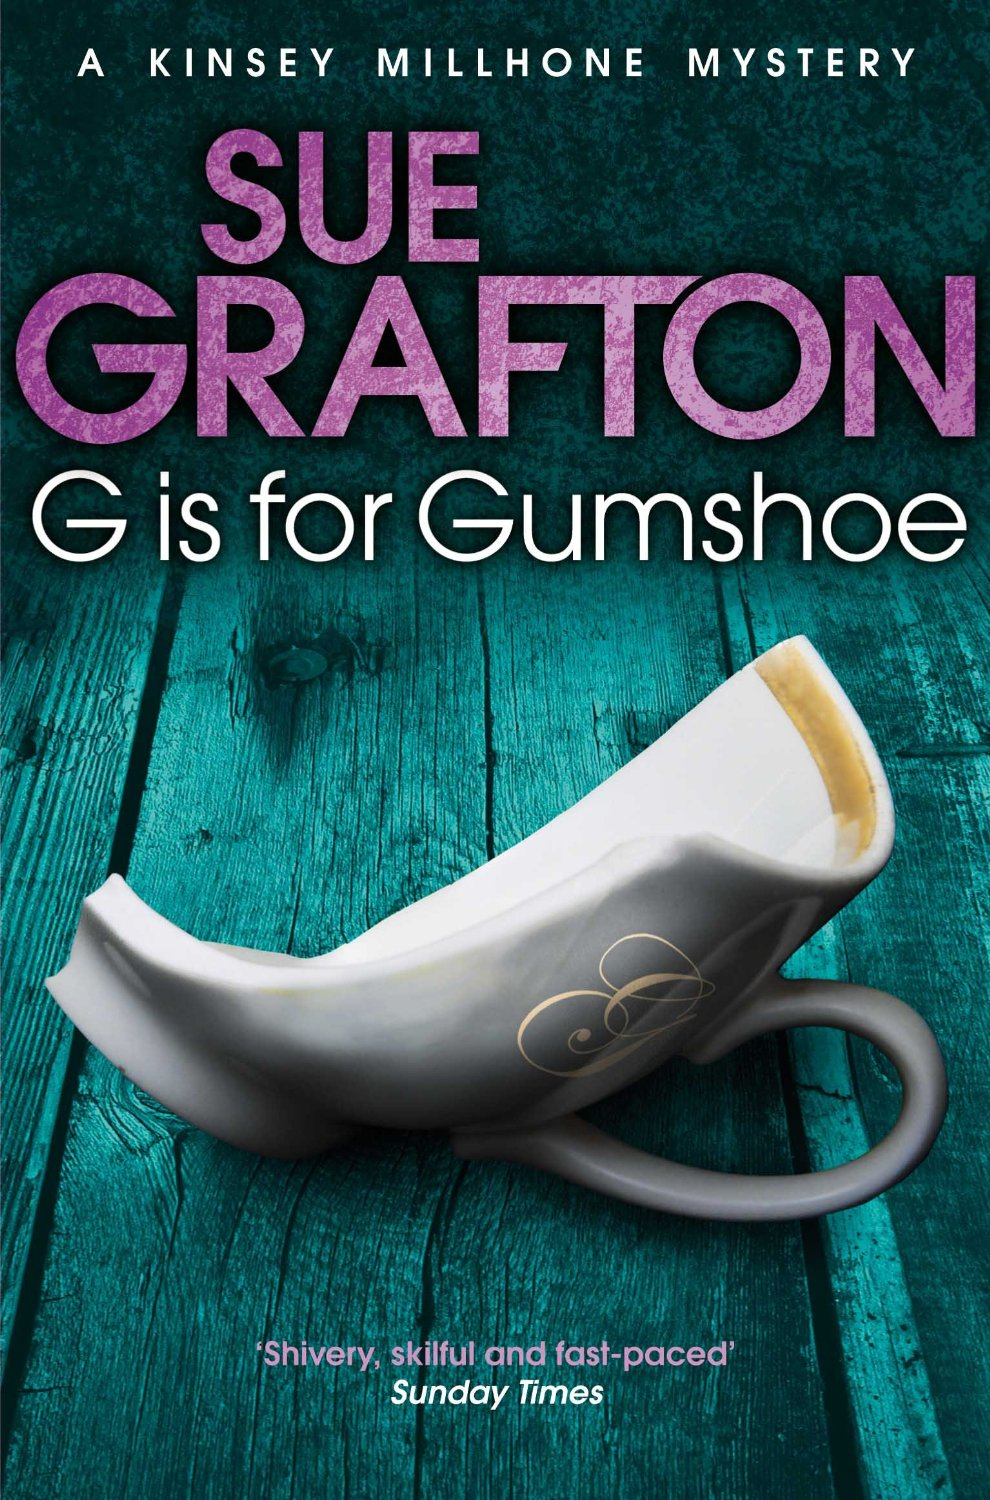 G IS FOR GUMSHOE -  Sue Grafton - 9781447212270